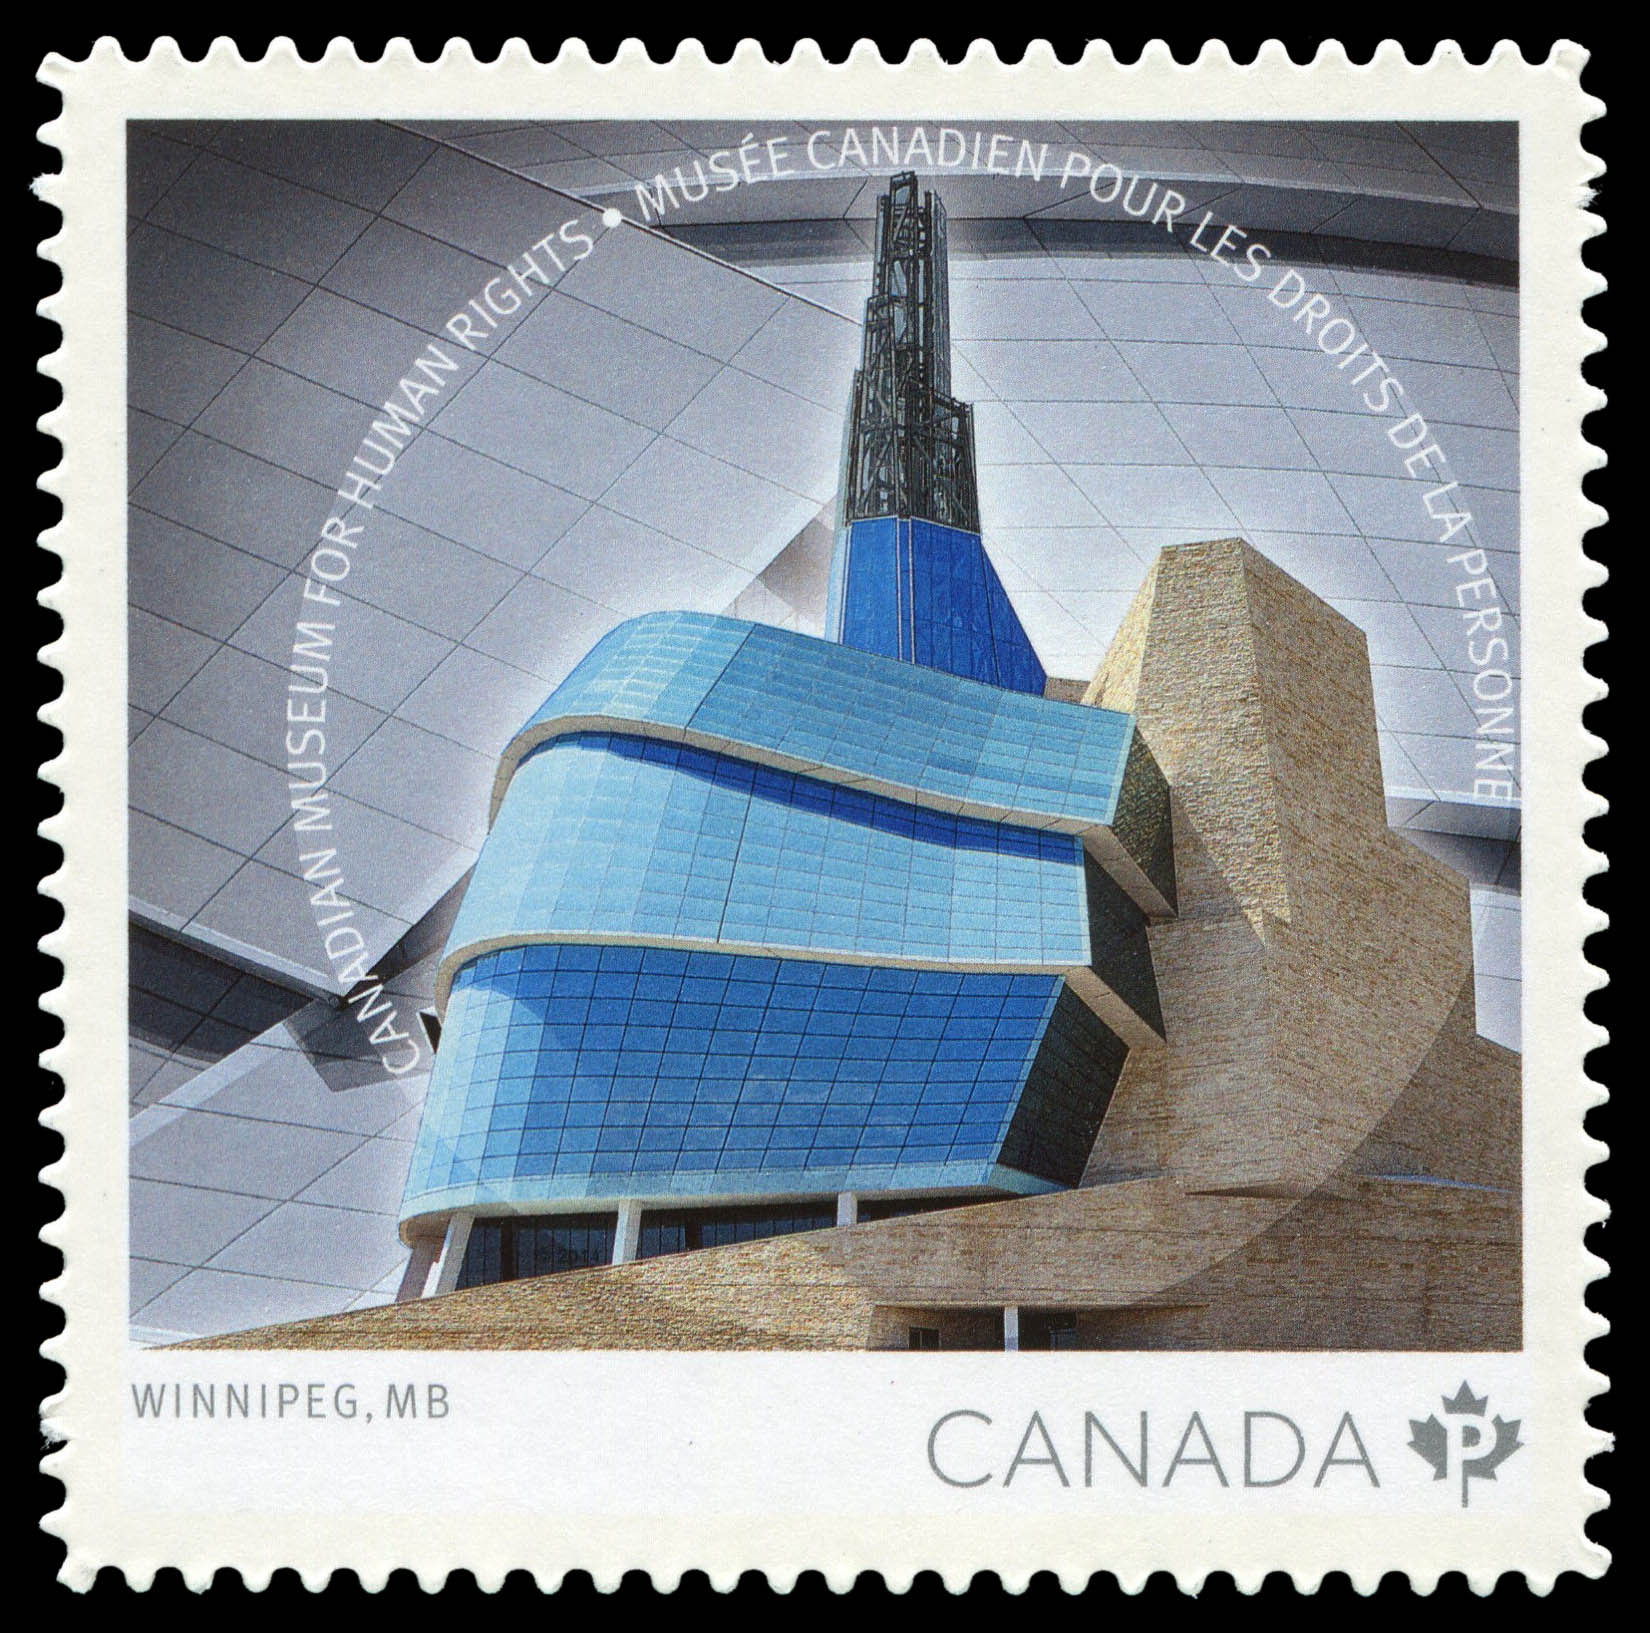 Canadian Museum for Human Rights Canada Postage Stamp